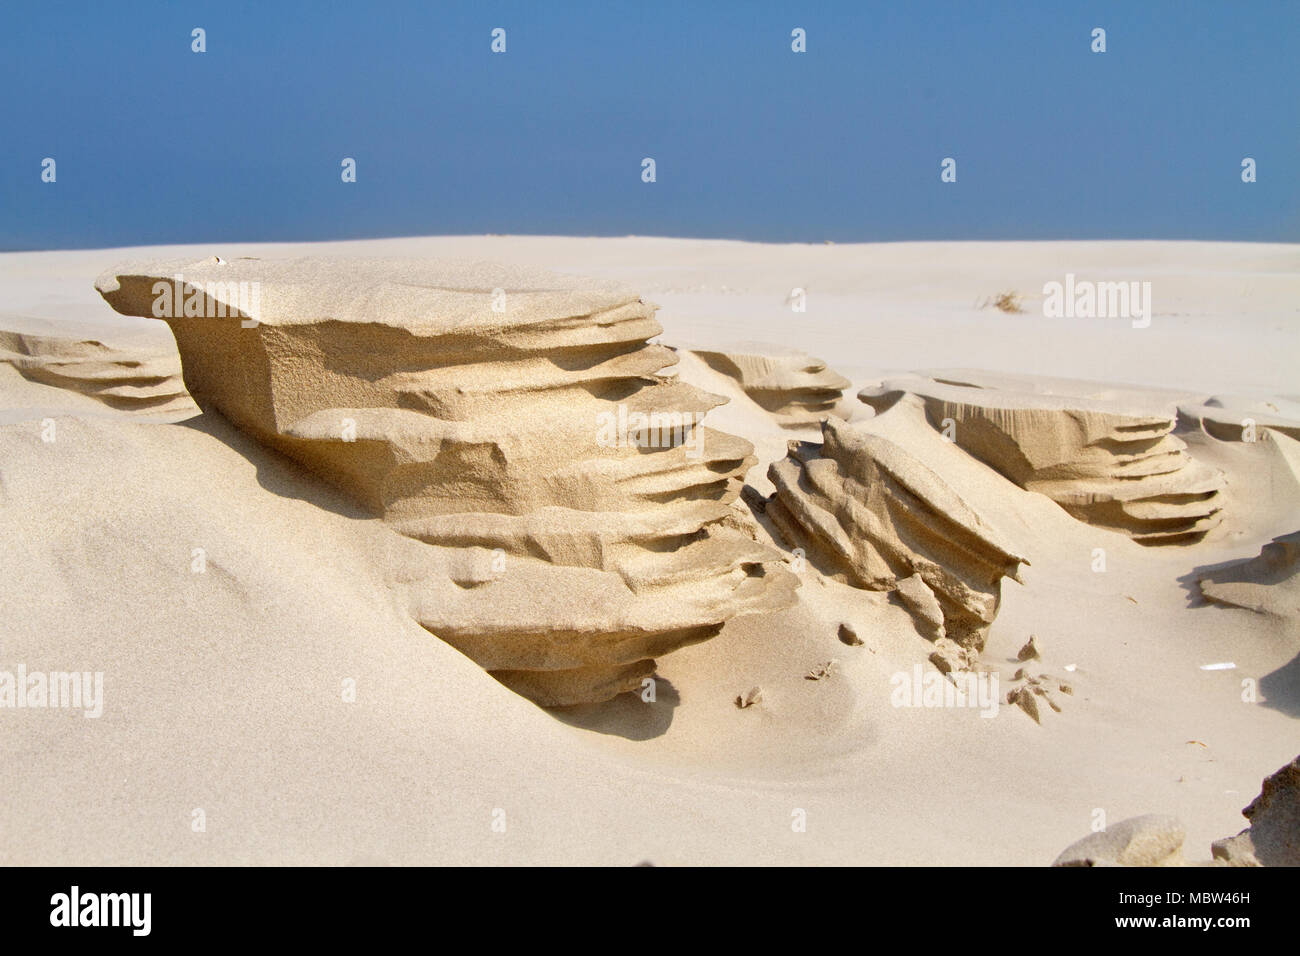 Wind Erosion Stock Photos Amp Wind Erosion Stock Images Alamy